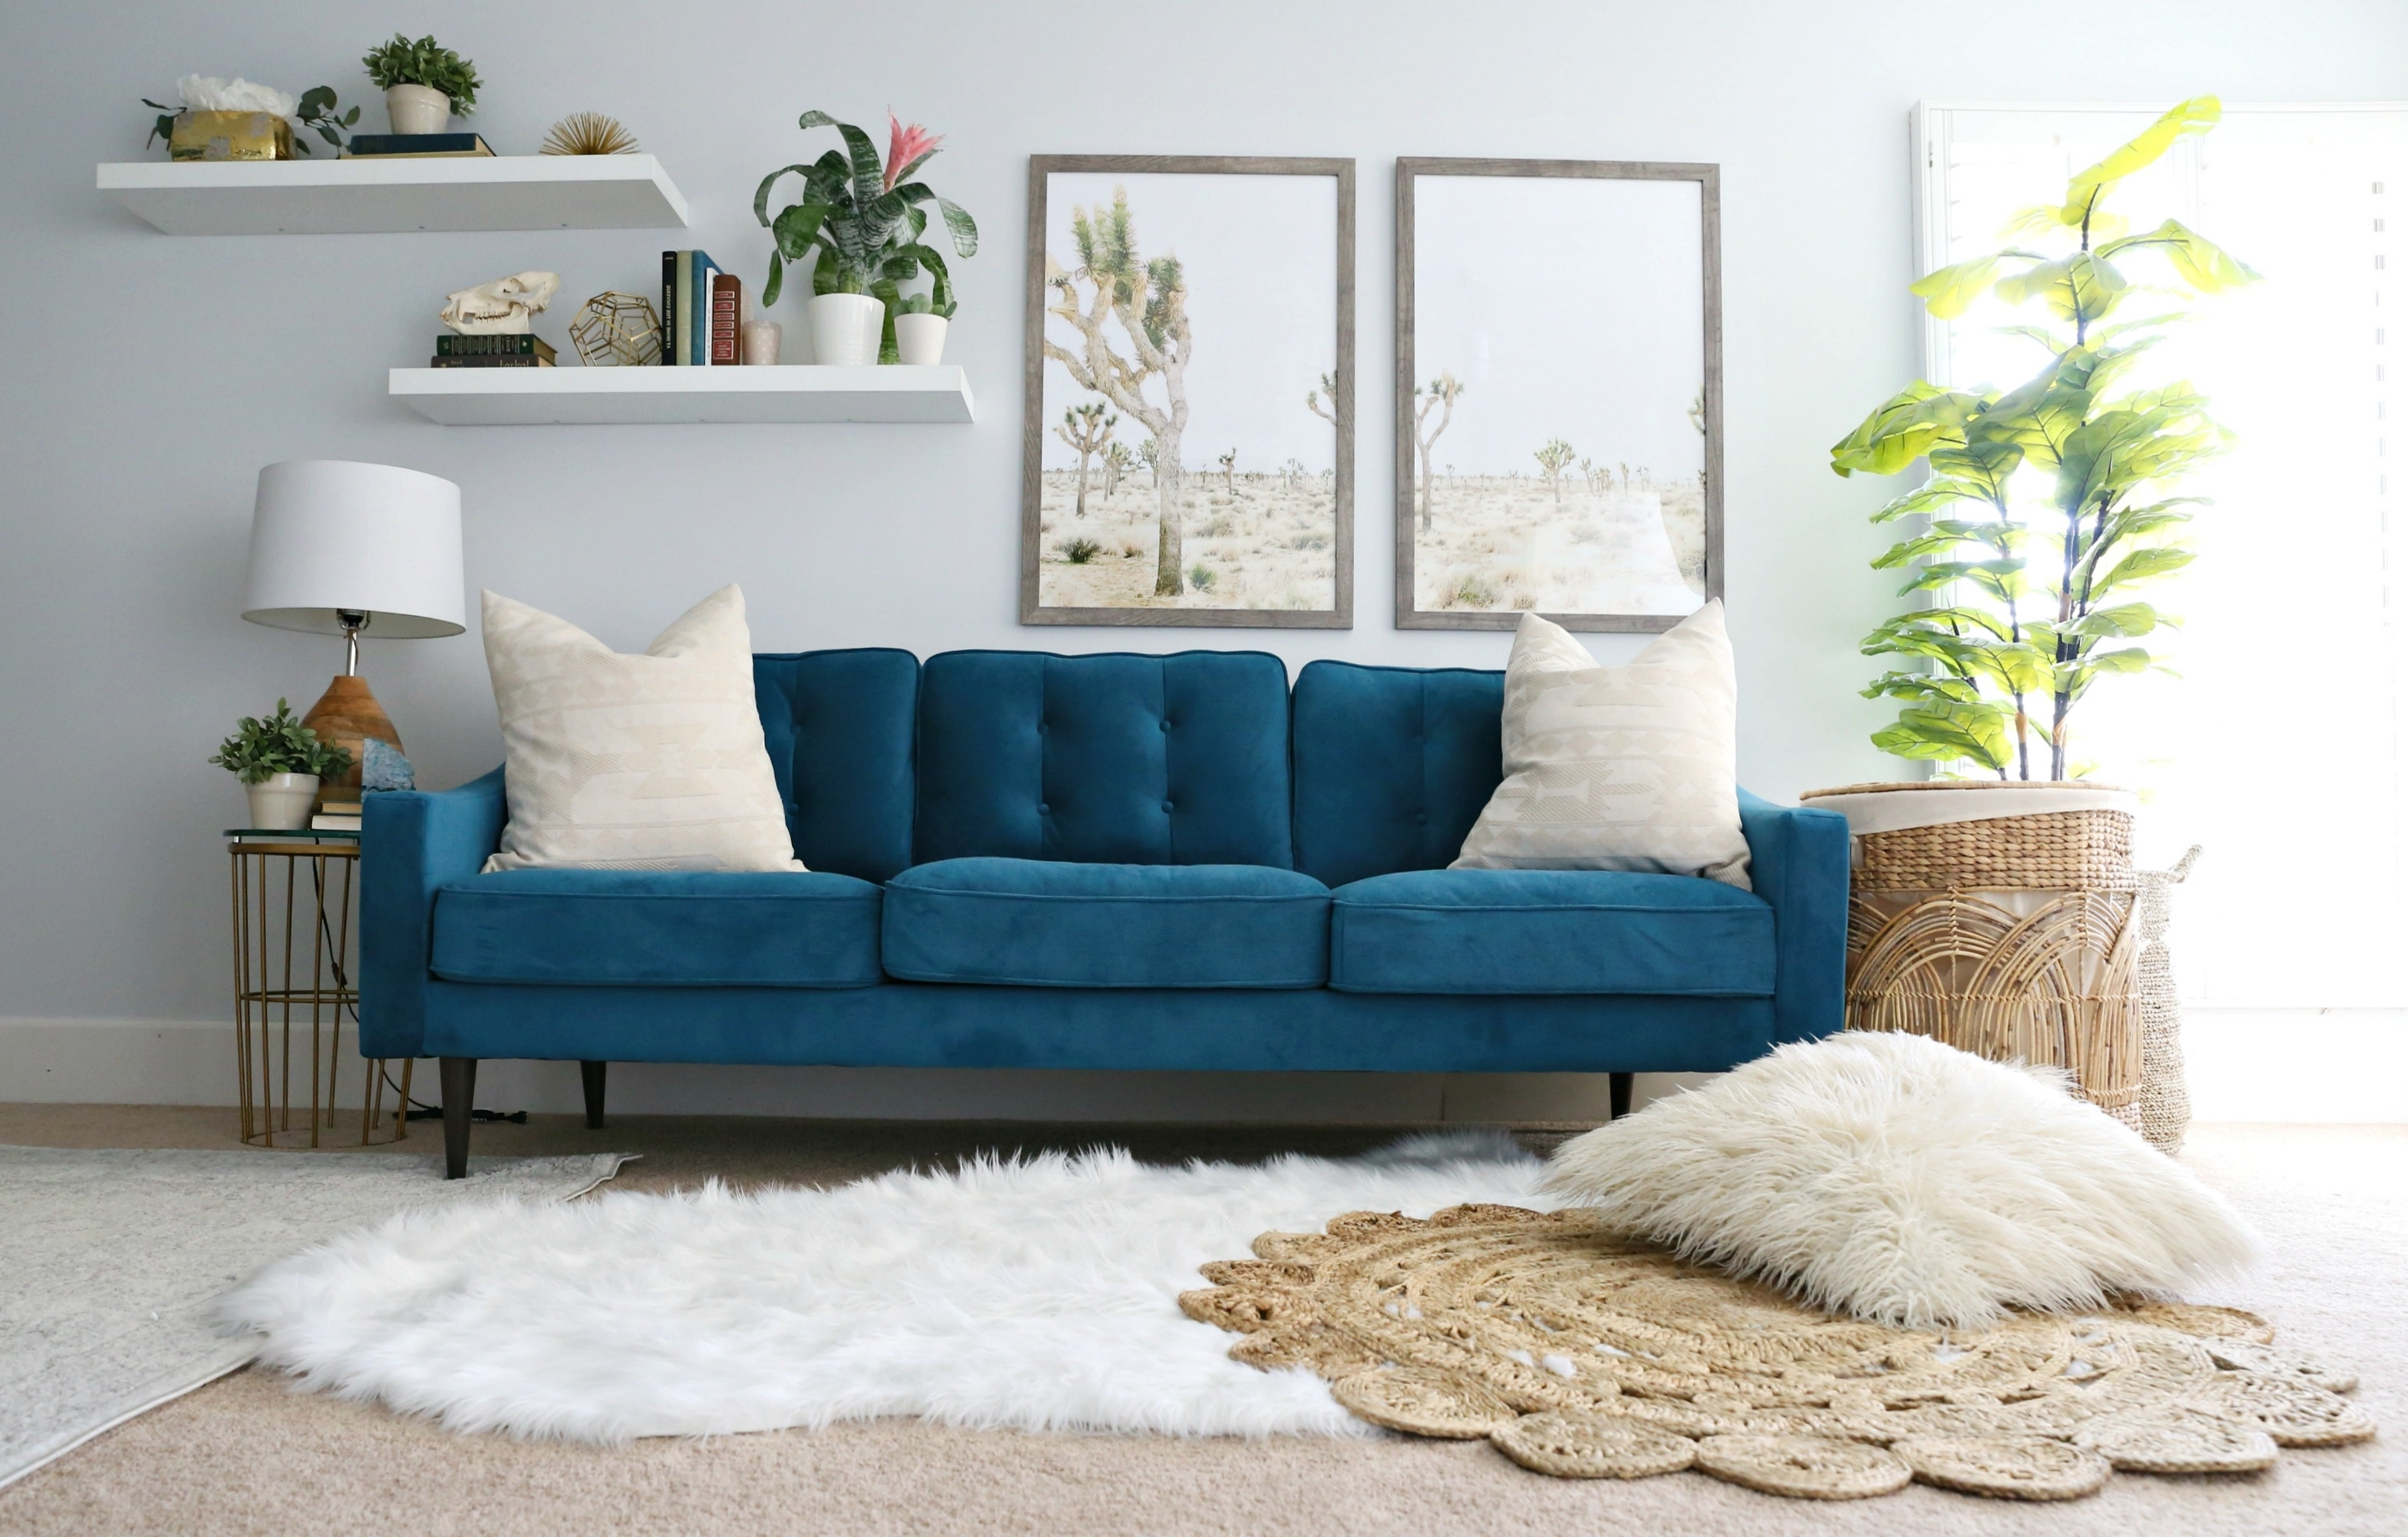 Trendy Sectional Sofas Under 200 Pertaining To Loveseat : Comfy L Shaped Sofa Tan L Shaped Couch Sofa Under (View 17 of 20)